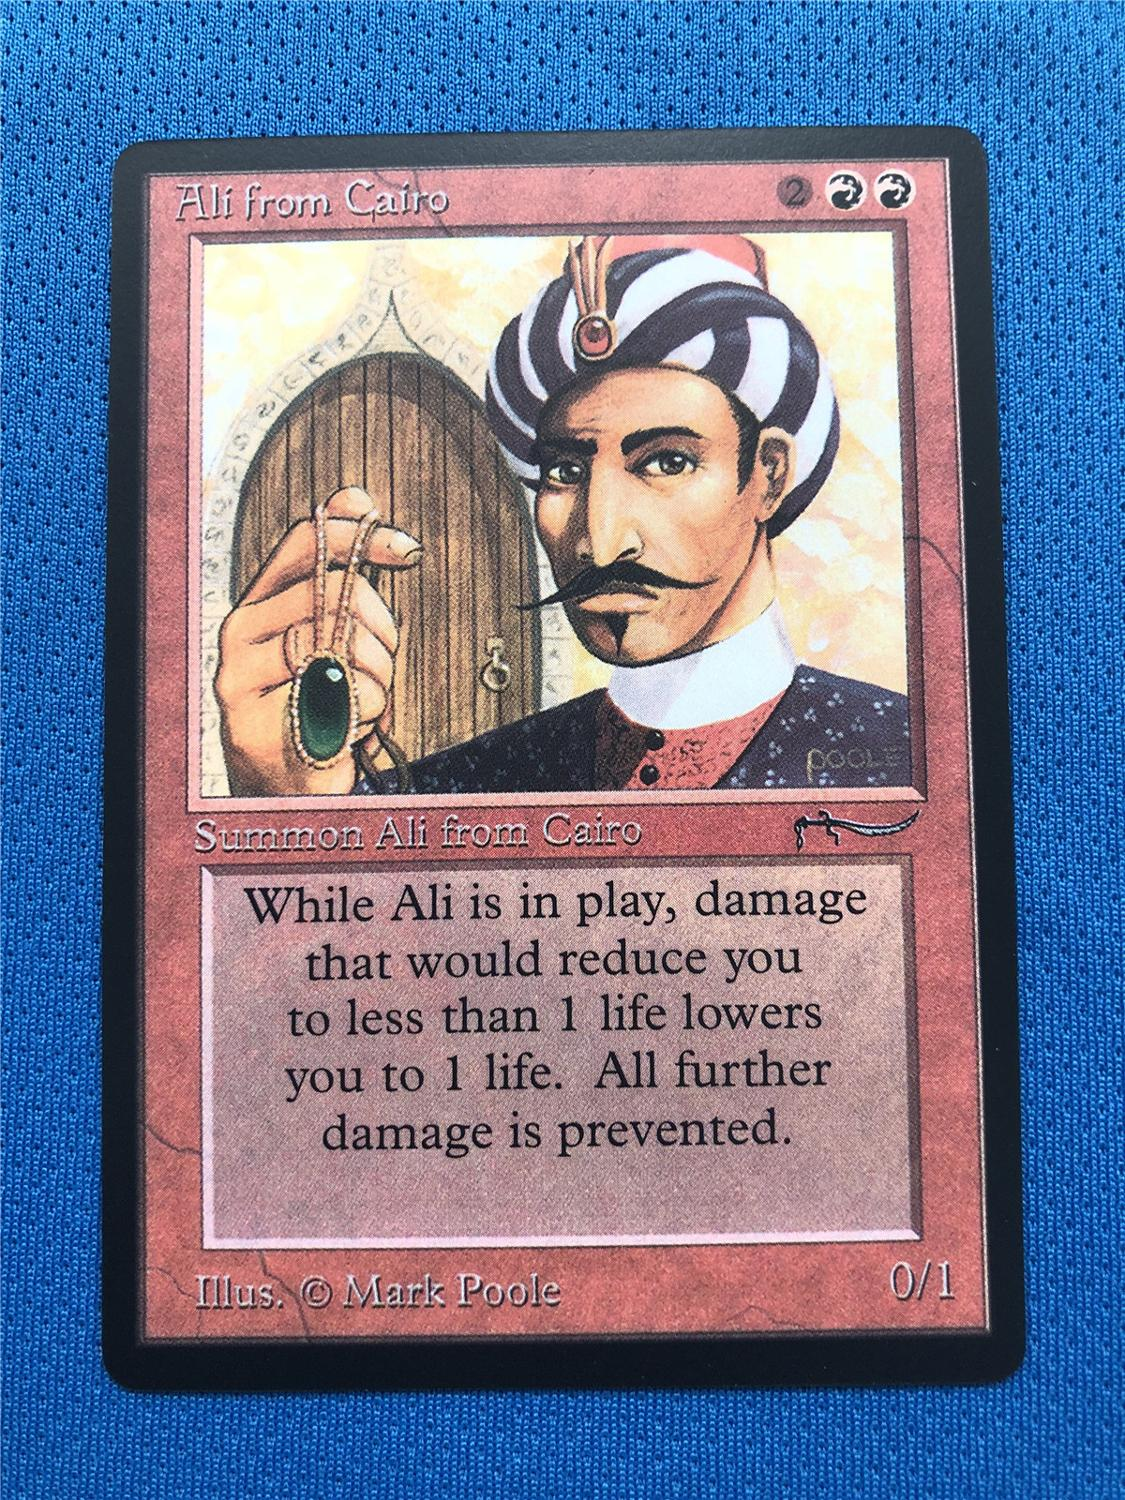 Ali From Cairo (ARN Arabian Nights) Magician ProxyKing 8.0 VIP The Proxy Cards To Gathering Every Single Mg Card.